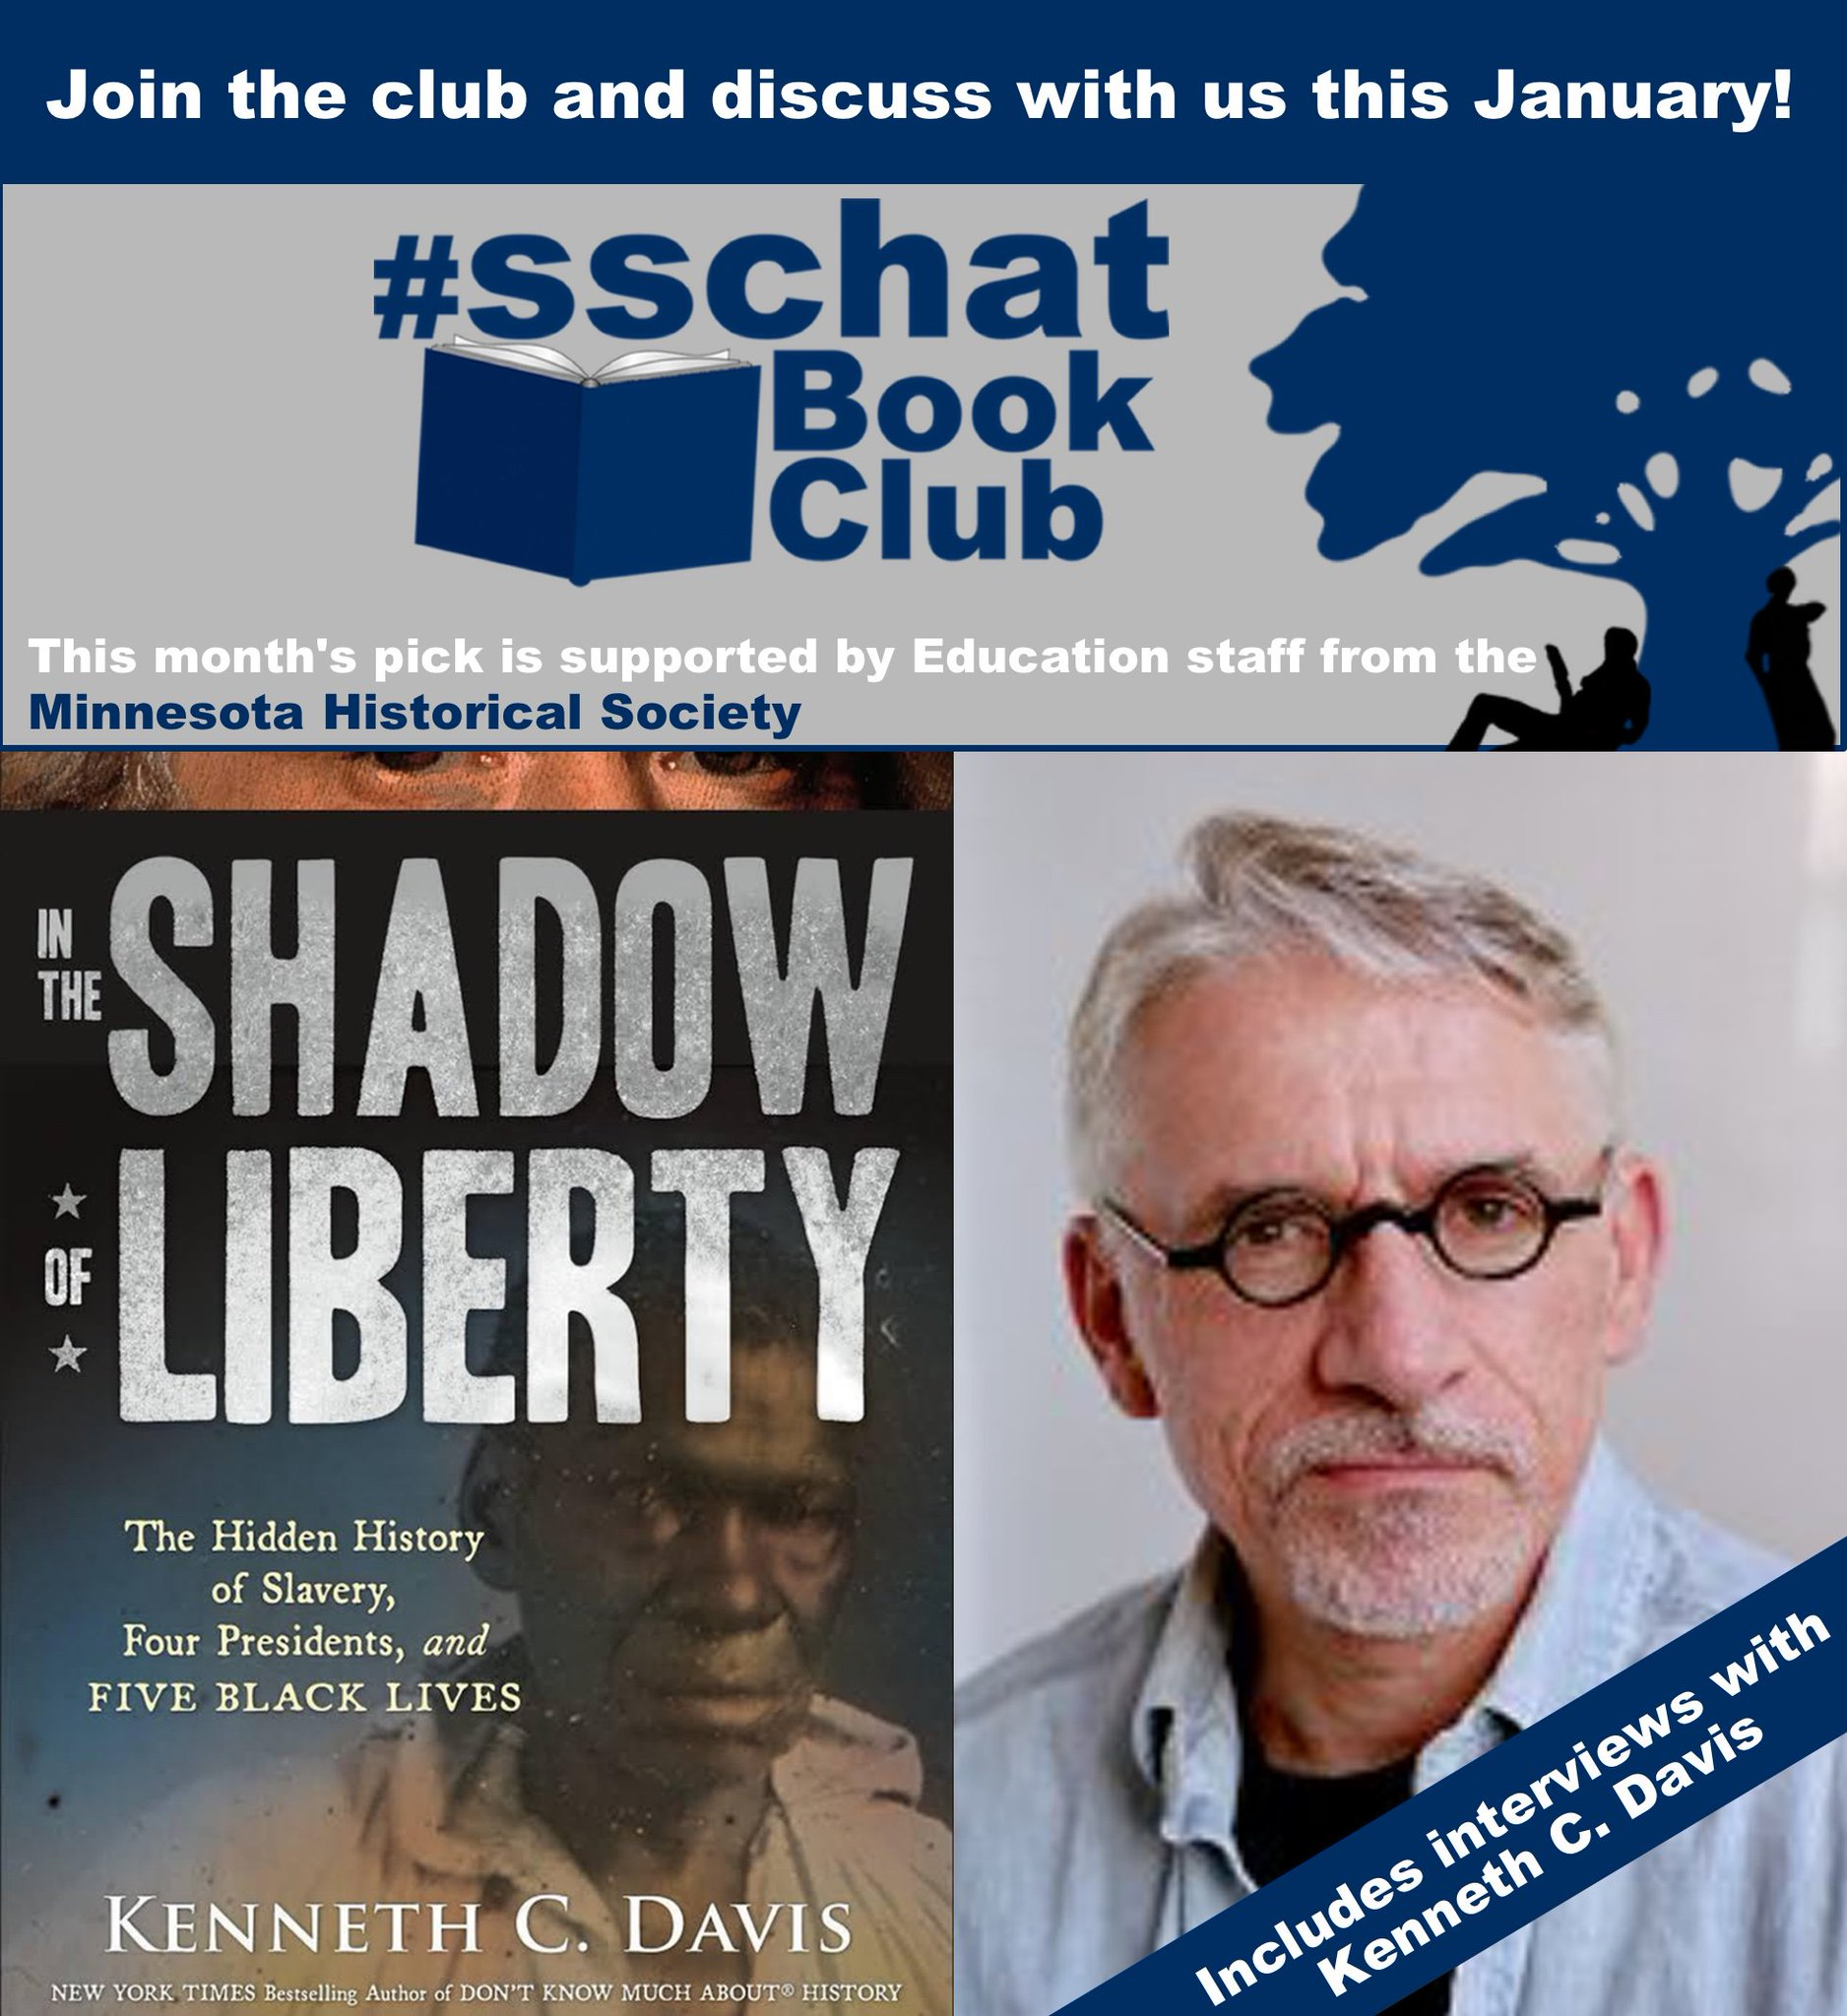 Want to join the #SSChat Book Club? In Jan., we'll read & discuss In the Shadow of Liberty! Like our dedicated page! https://t.co/1nisk2mu7x https://t.co/ZRQF0j69Ab